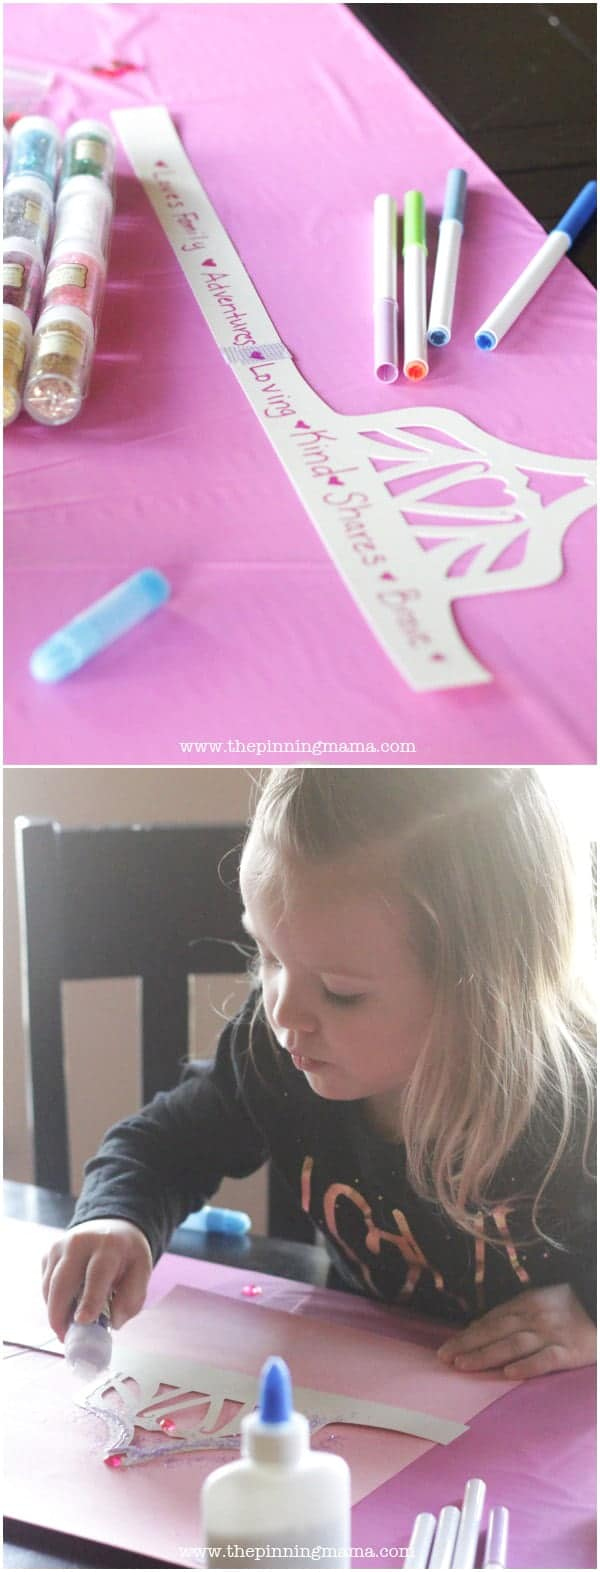 DIY Princess Crowns for Princess Party: Write what makes princess beautiful on the inside on the inside of the crown and then decorate the outside. Free printable crown +Silhouette cut file included!